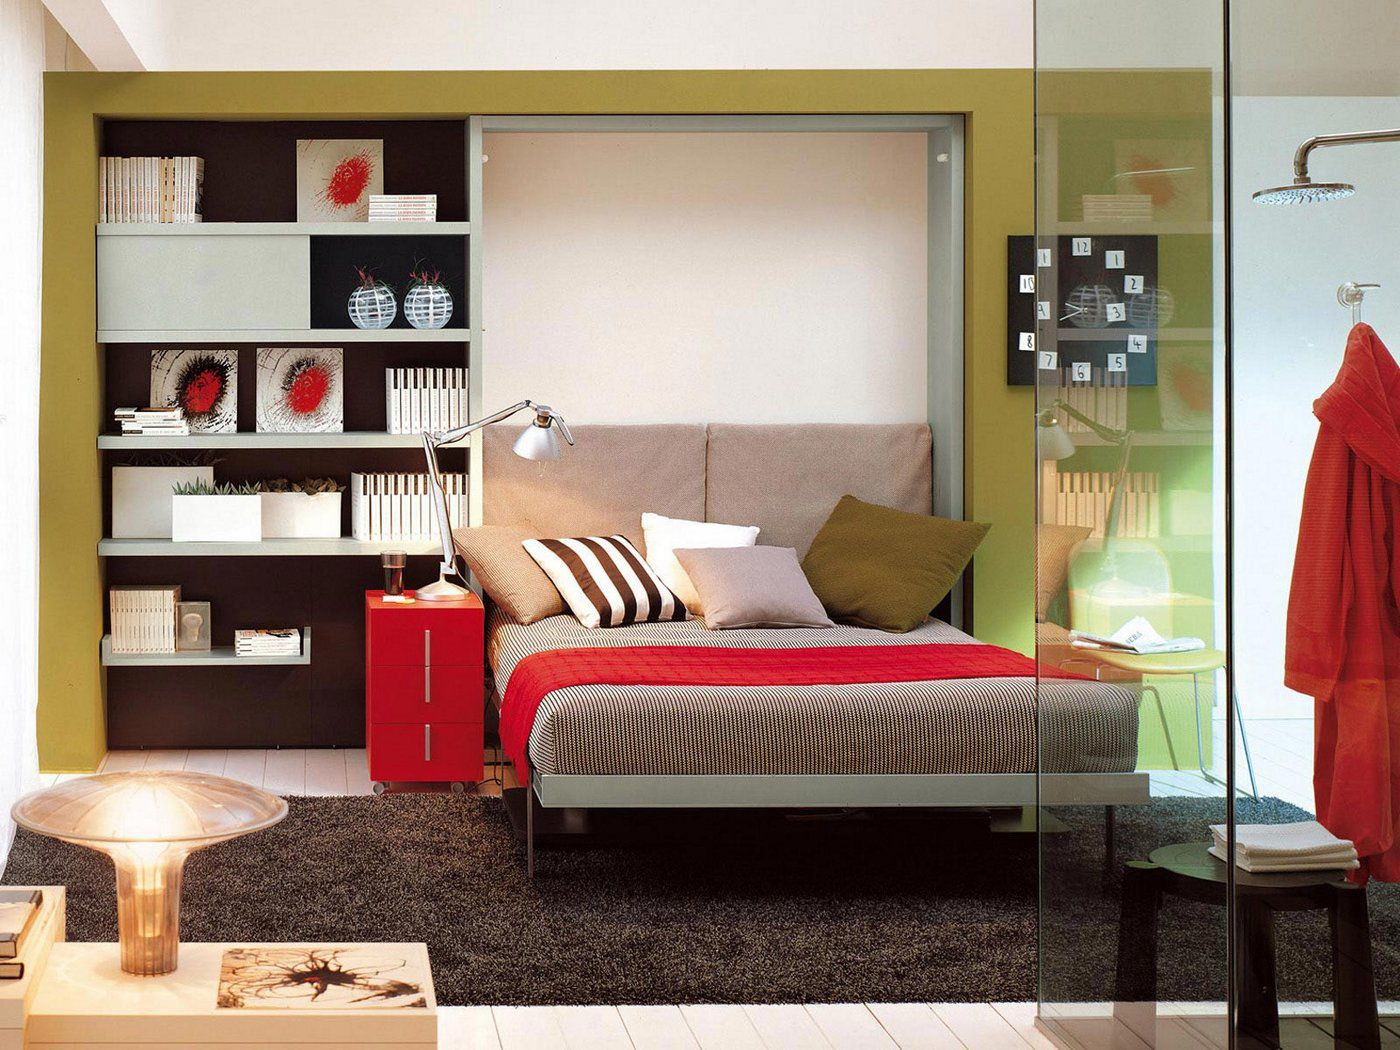 Wall bed single double contemporary ulisse desk by giulio wall bed single double contemporary ulisse desk by giulio manzoni rd clei amipublicfo Images